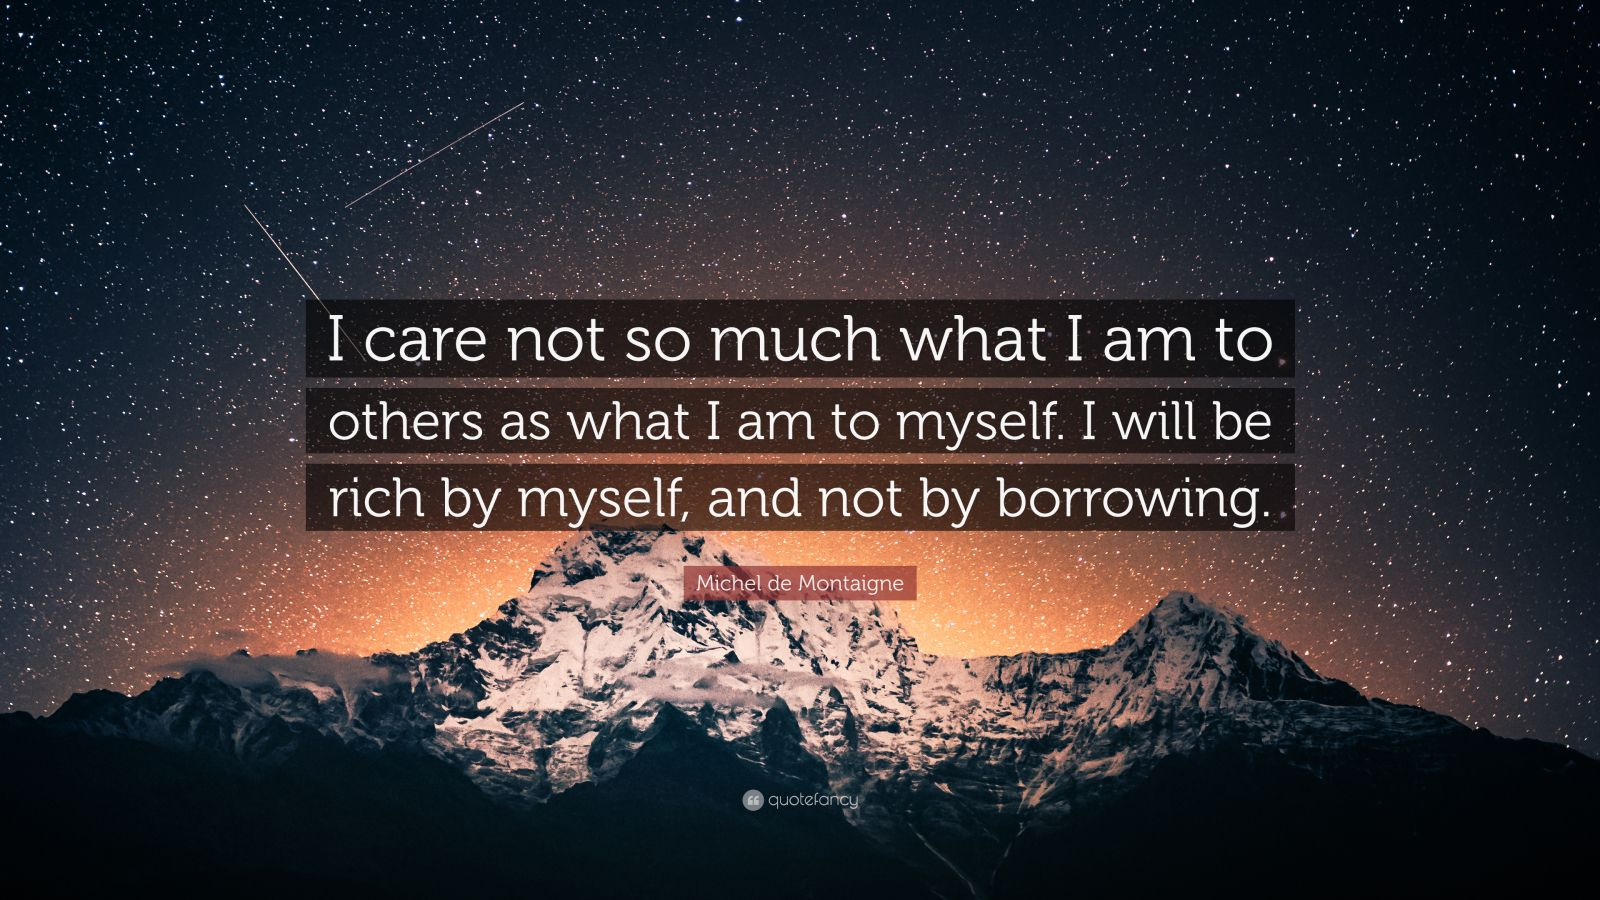 """Michel de Montaigne Quote: """"I care not so much what I am to others as what I am to myself. I will be rich by myself, and not by borrowing."""""""